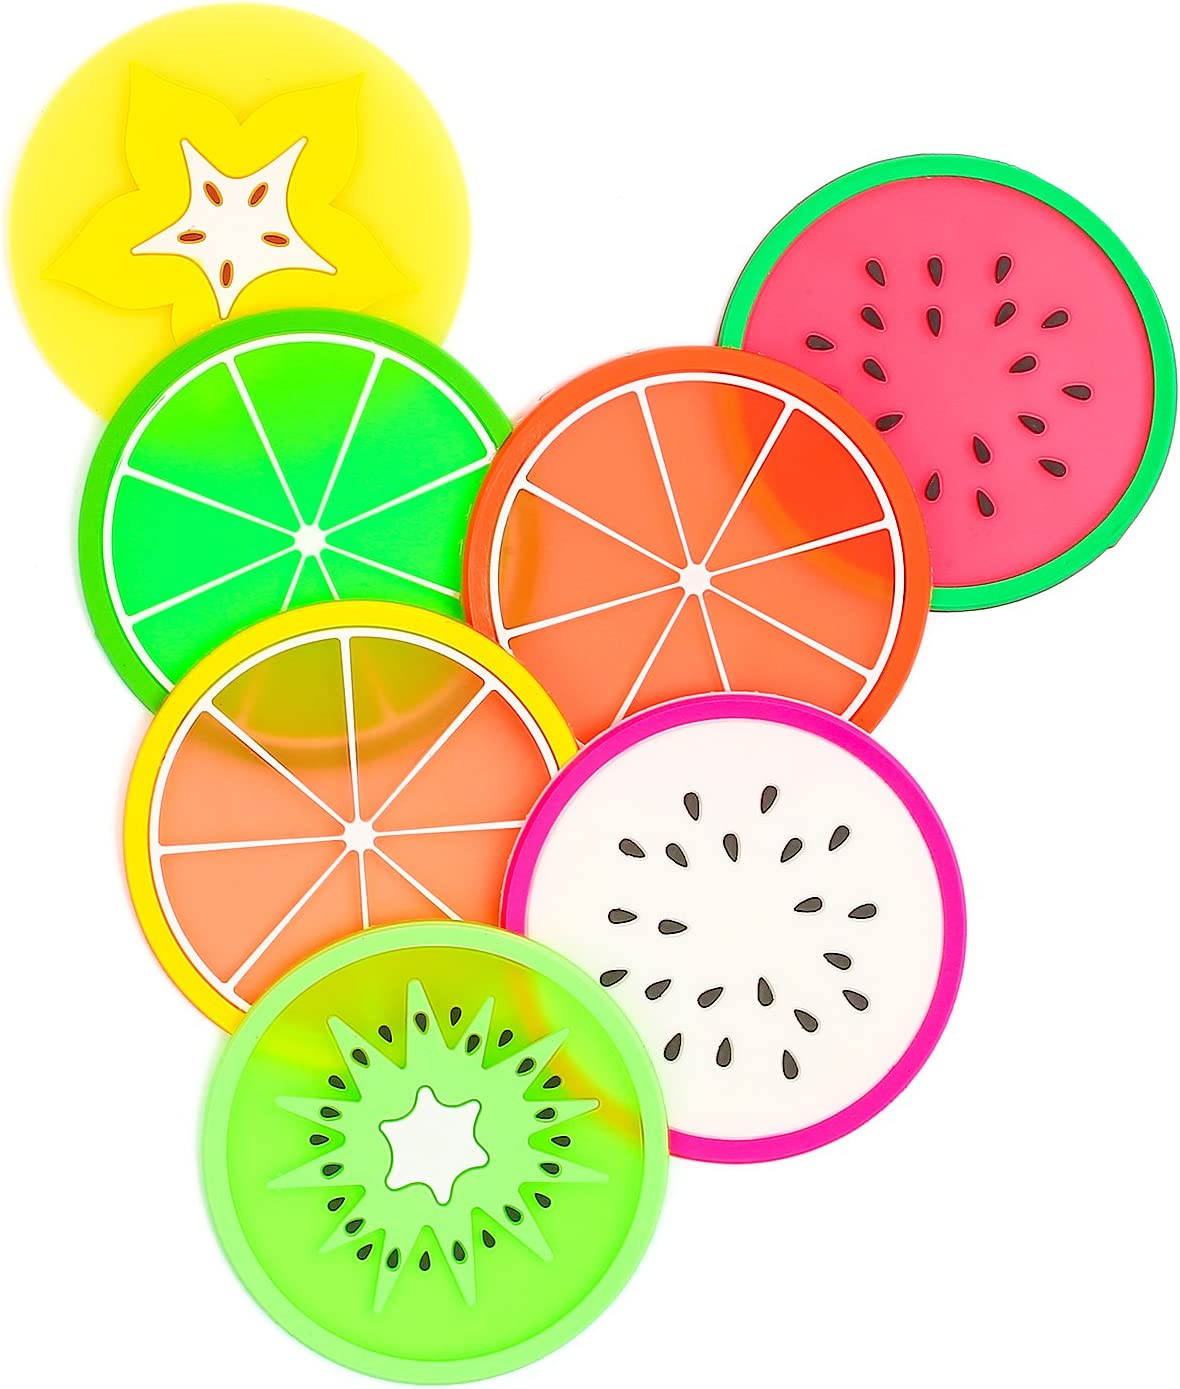 """Fruit Coaster, 7PCS 3.5"""" Non Slip Coasters Heat Insulation Colorful Unique Slice Silicone Drink Cup Mat for Drinks Prevent Furniture and Tabletop by BmStar"""